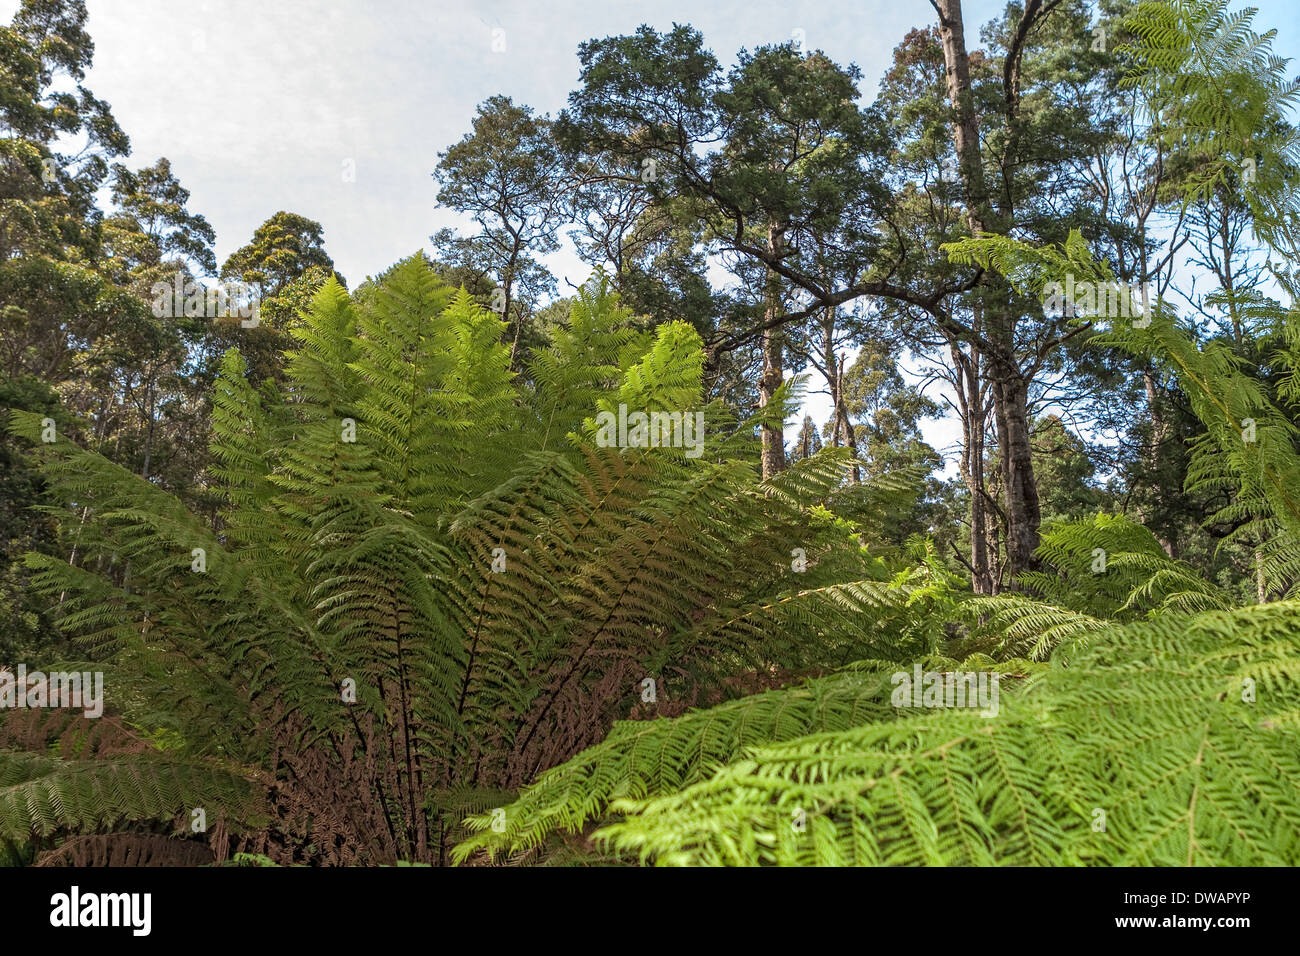 The Blue Tier Forest Reserve near St Helen's Tasmania Australia - Stock Image